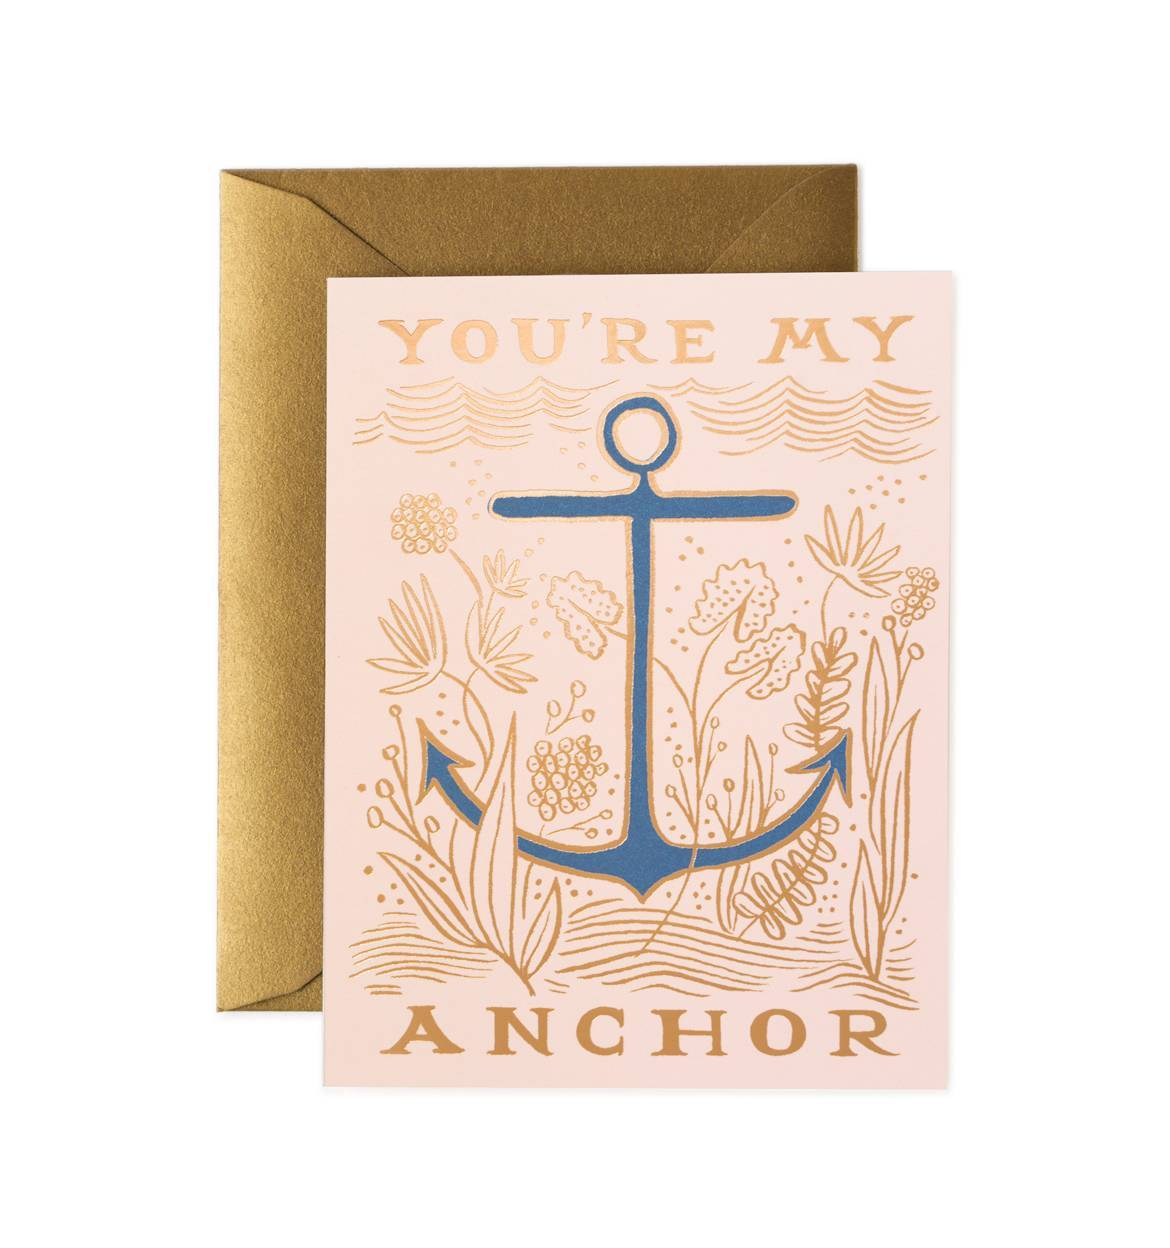 My Anchor